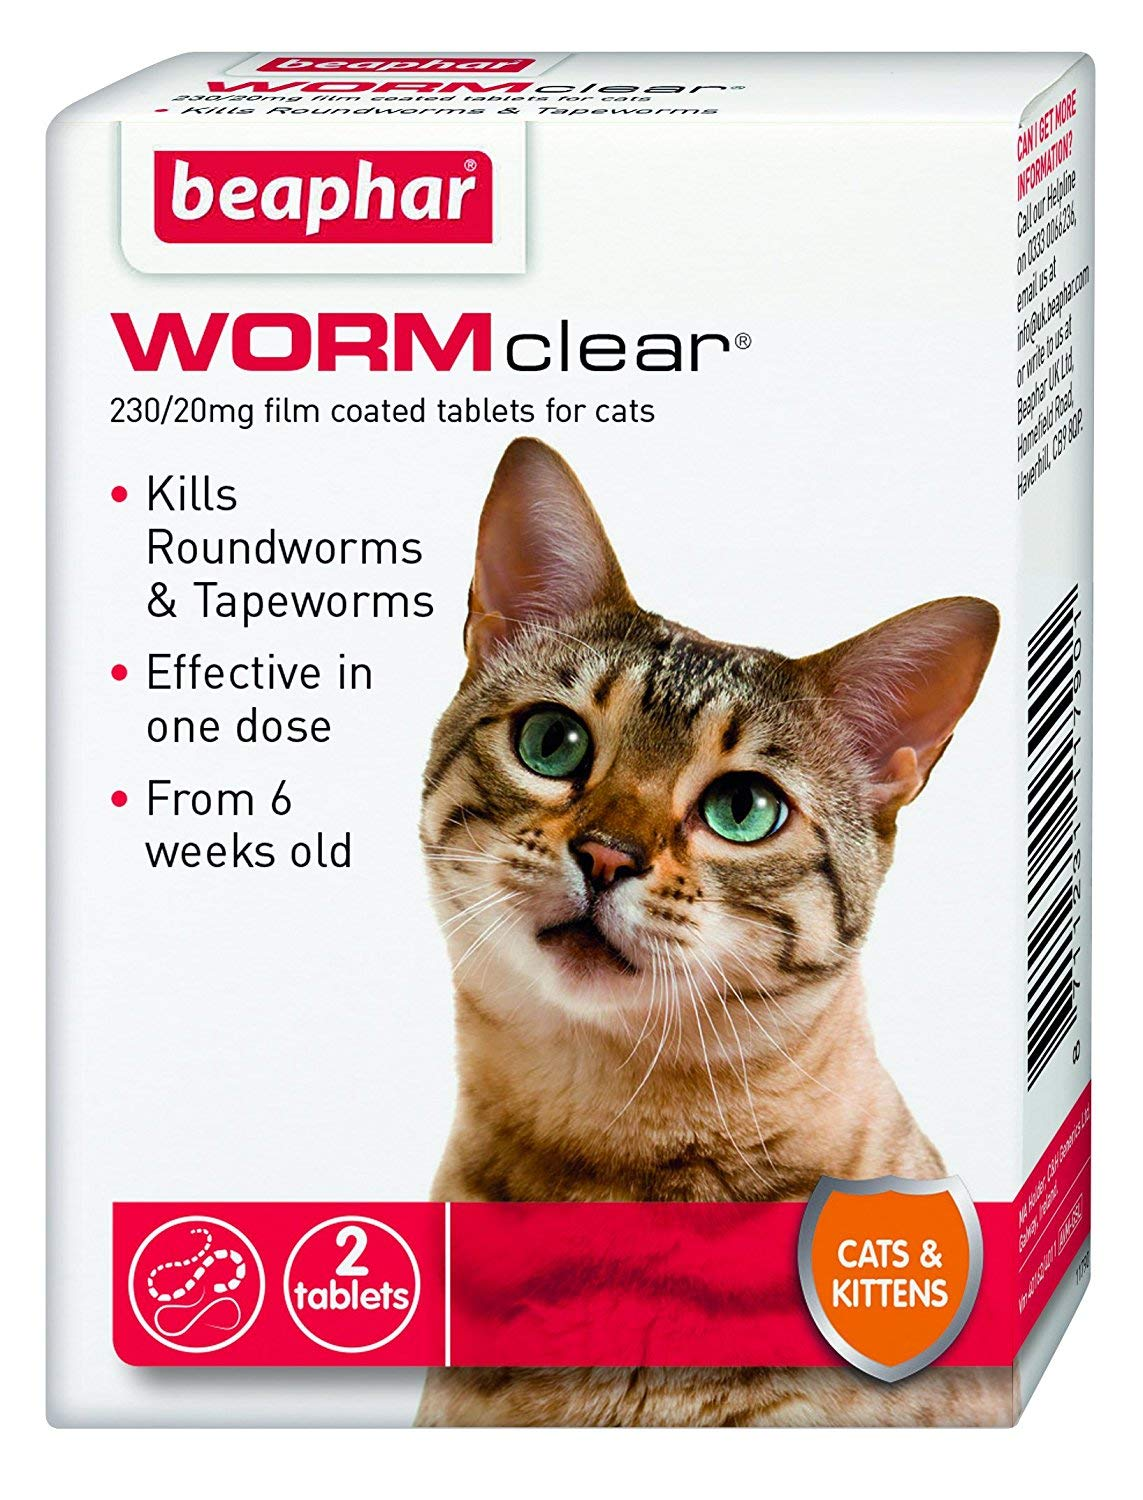 Beaphar WORMclear Cat Kitten Wormer for Roundworm Tapeworm Vet Strength Tablets